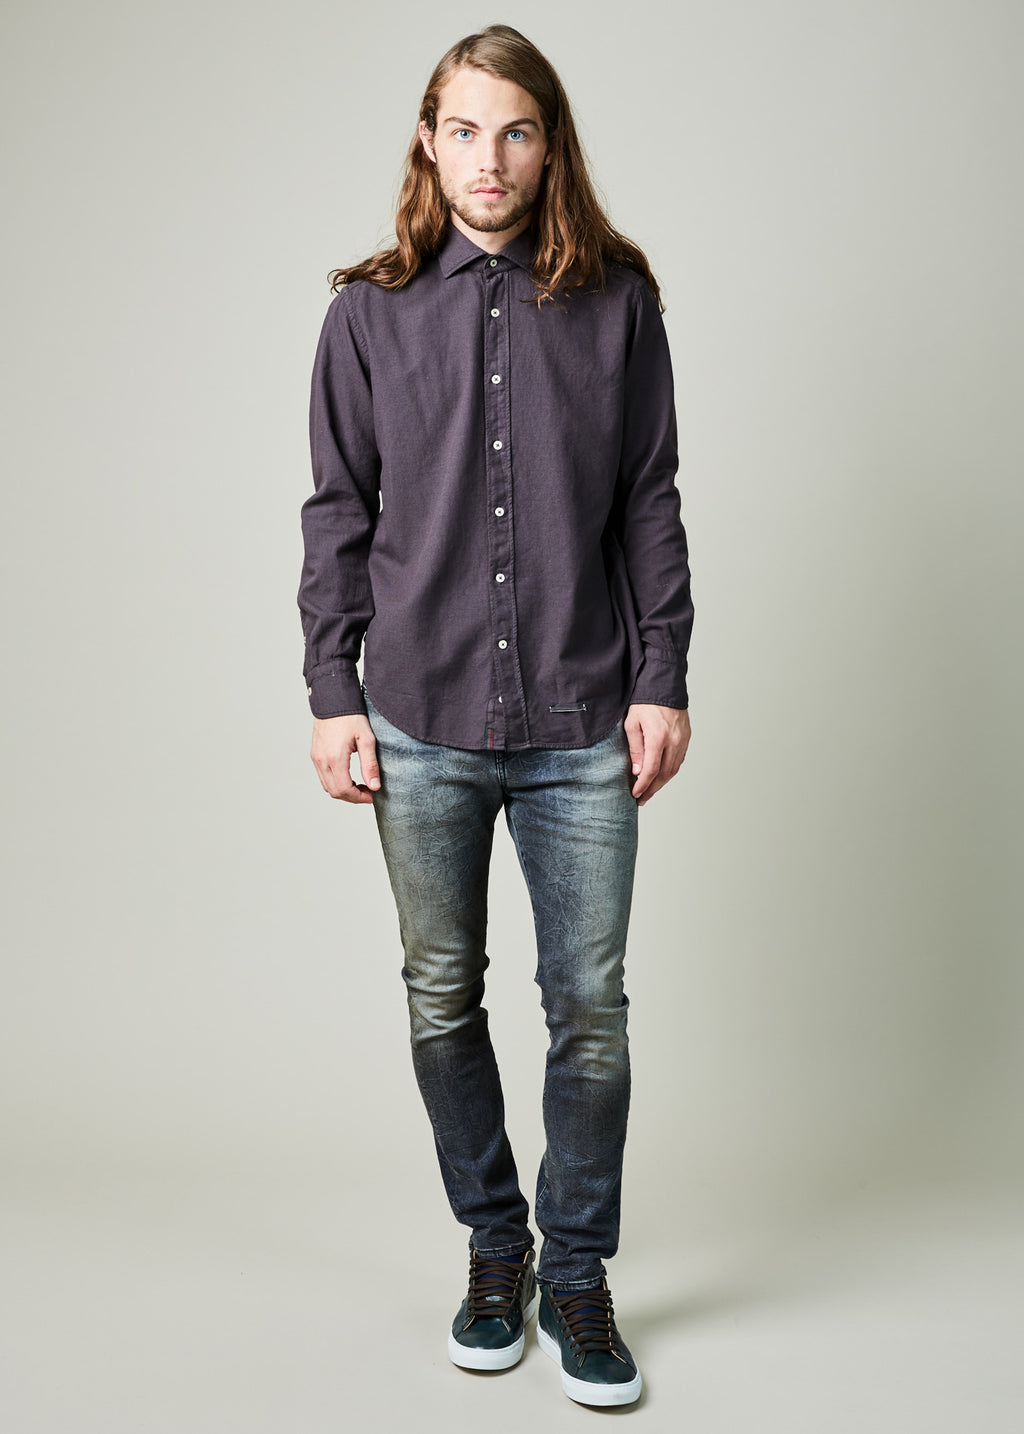 Contemporary Fit Wool Blend Shirt